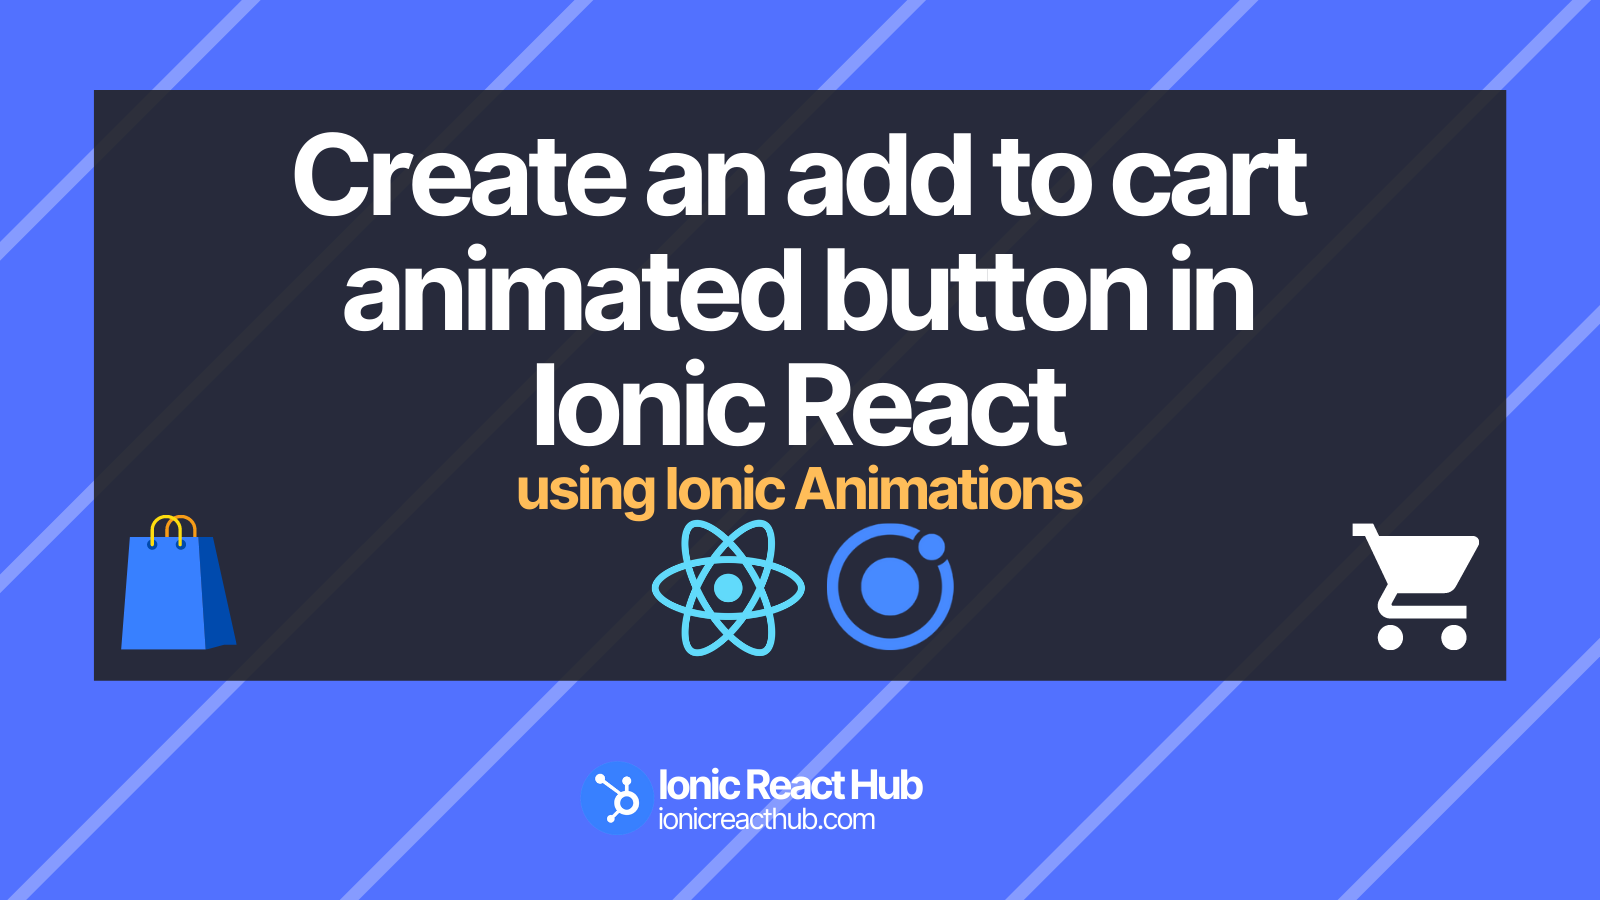 Simple and effective way to create an add to cart animated button in Ionic React with Ionic Animations.